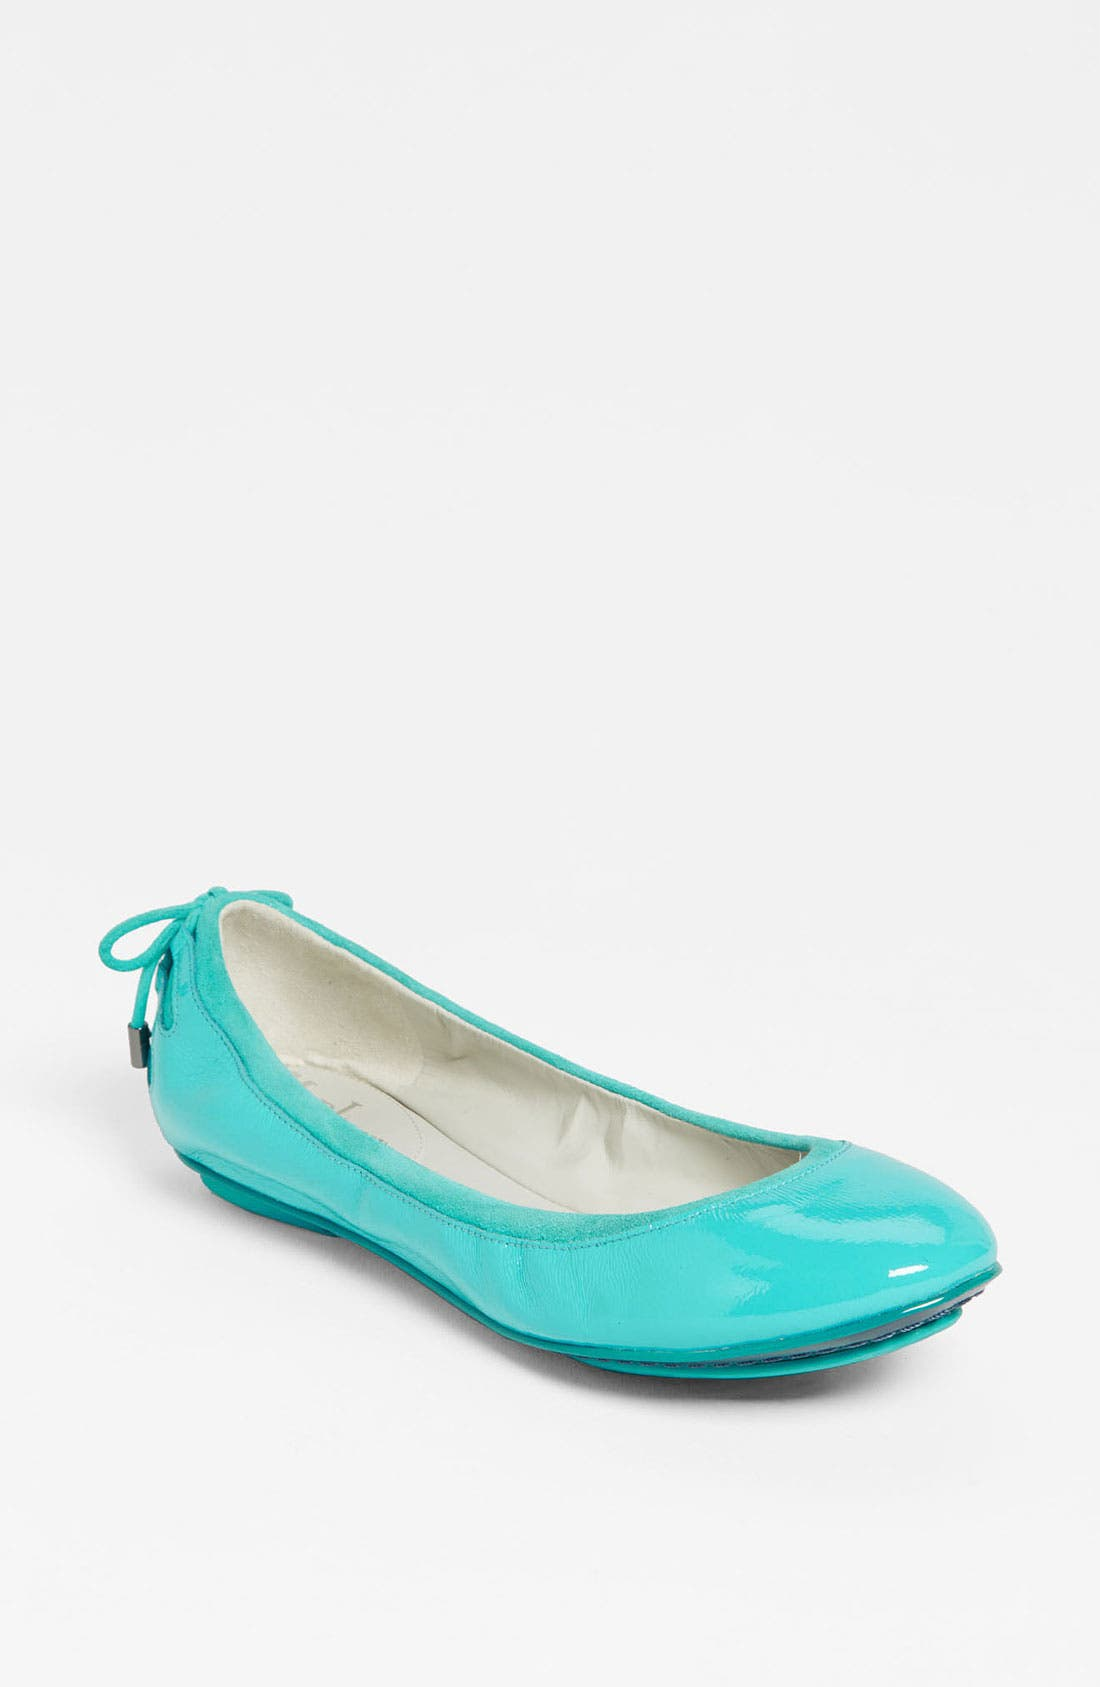 ,                             Maria Sharapova by Cole Haan 'Air Bacara' Flat,                             Main thumbnail 69, color,                             402